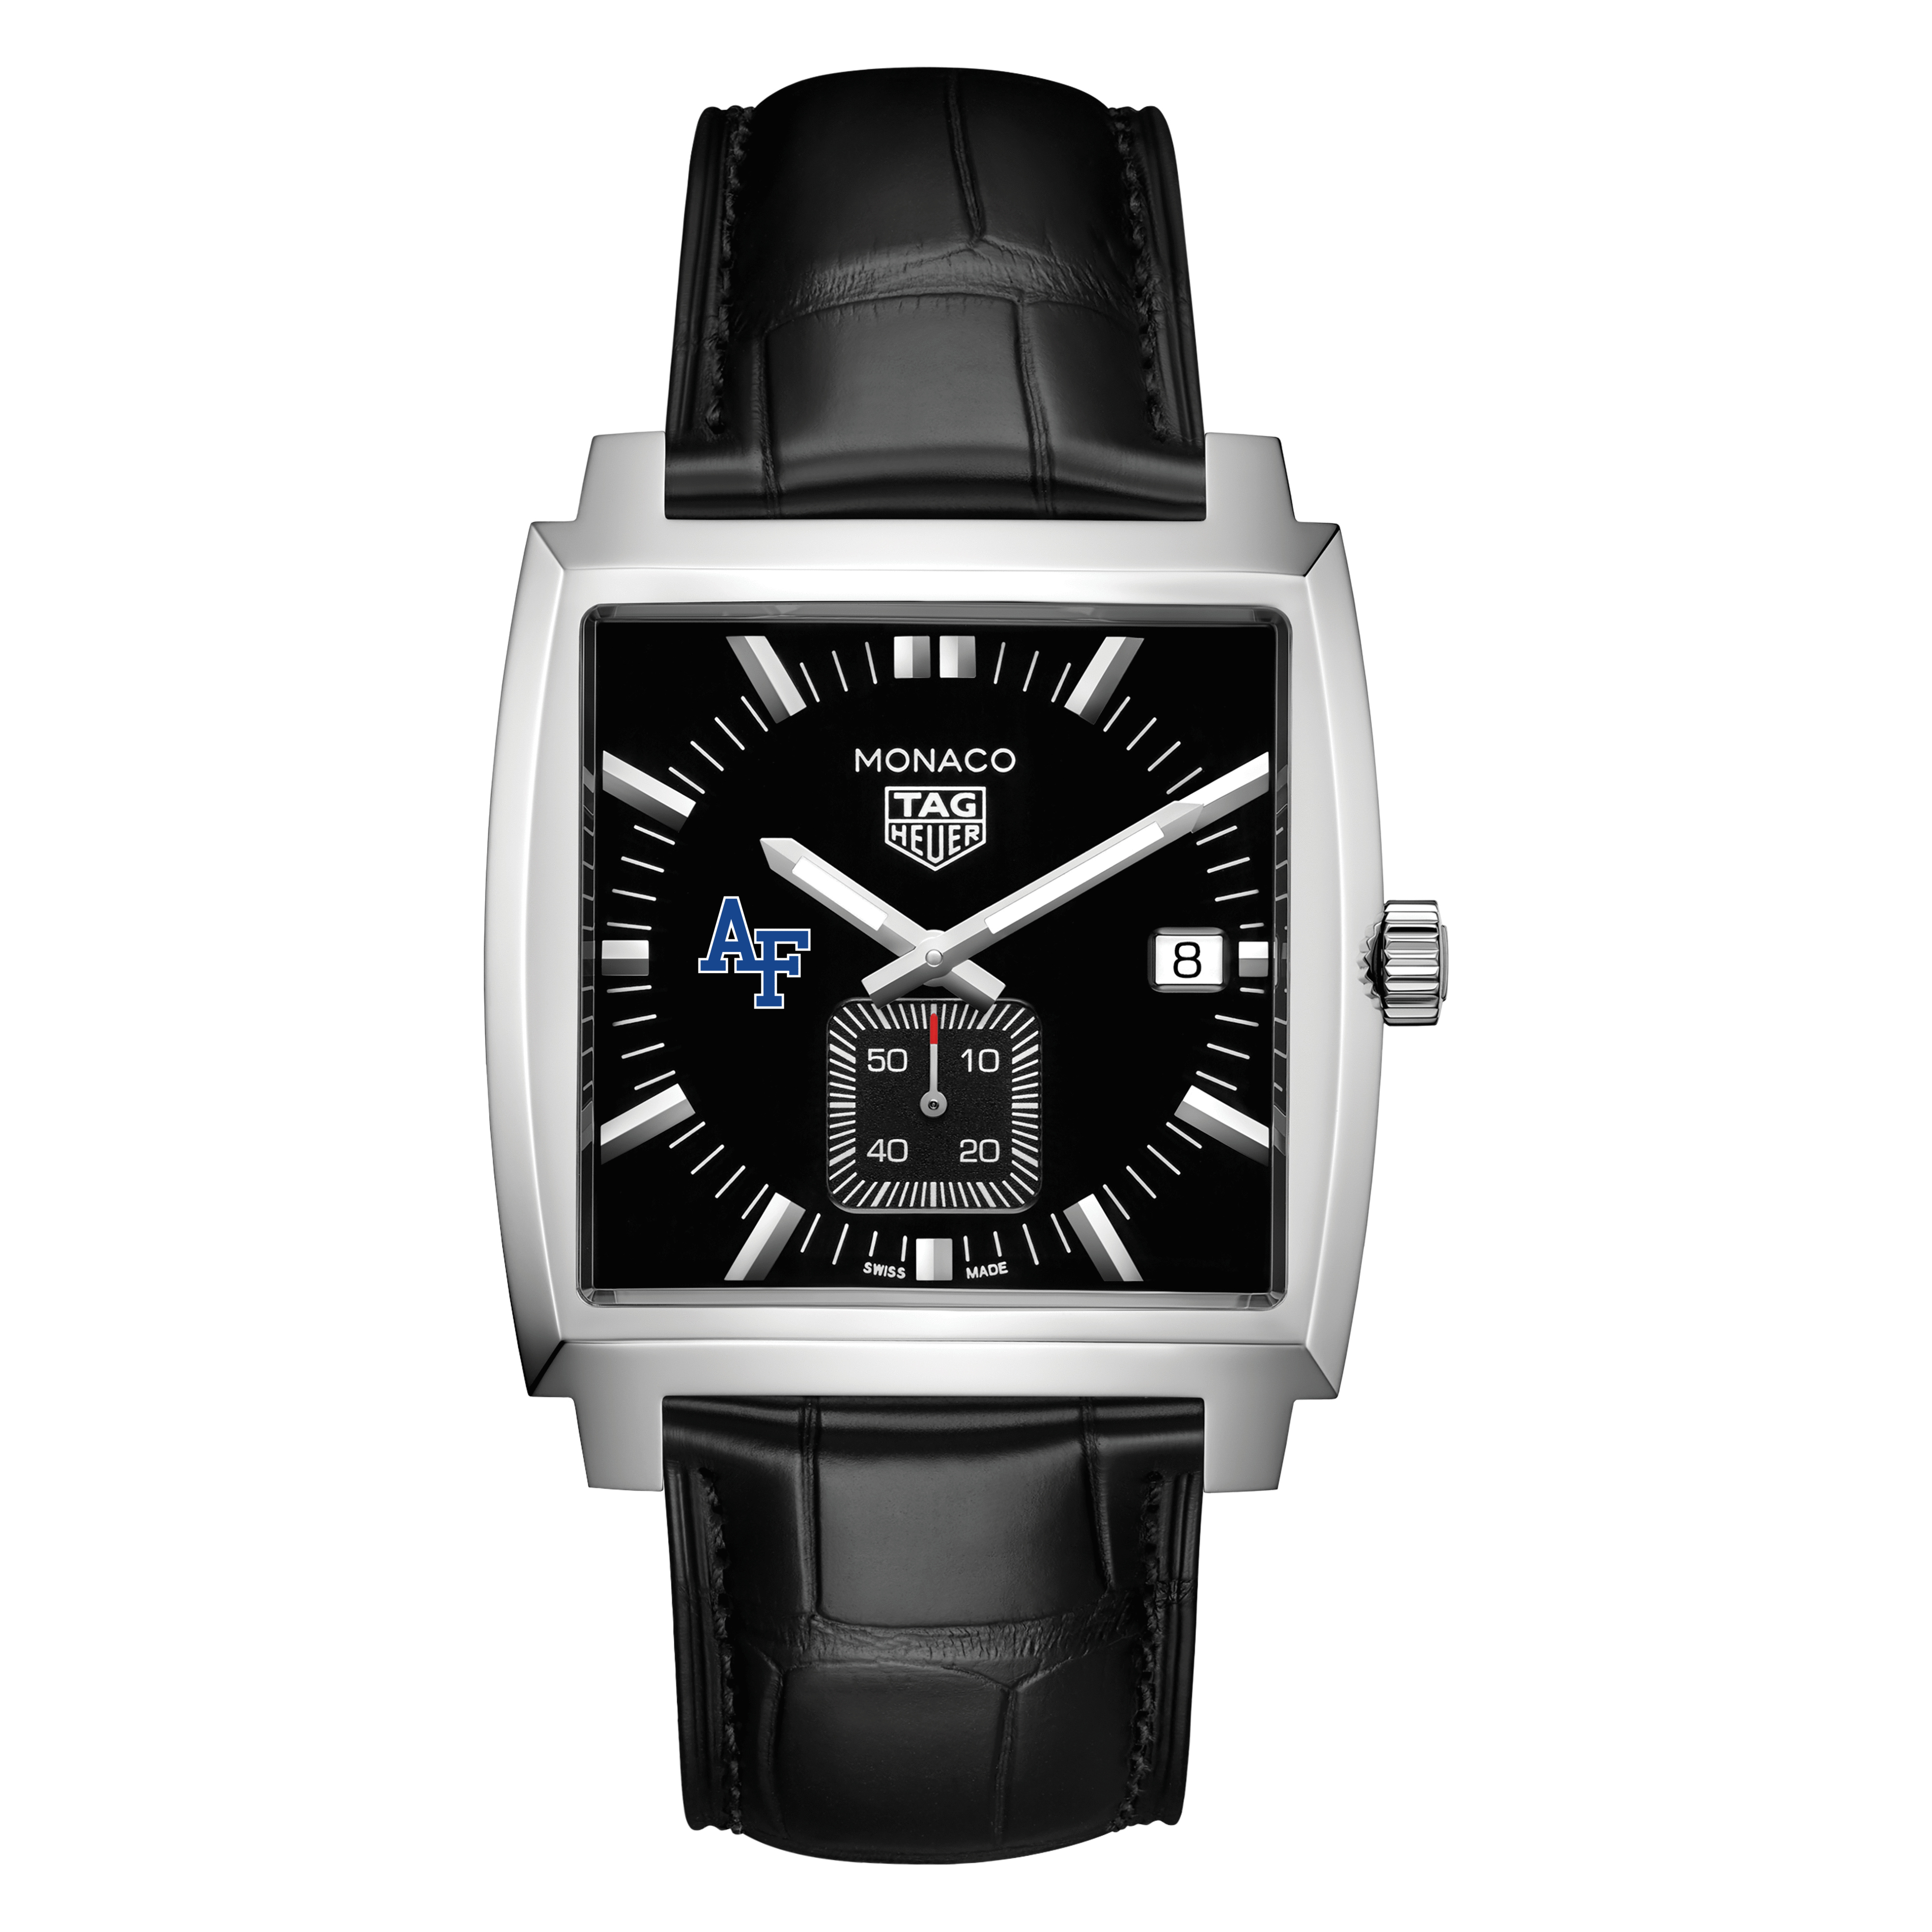 US Air Force Academy TAG Heuer Monaco with Quartz Movement for Men - Image 2